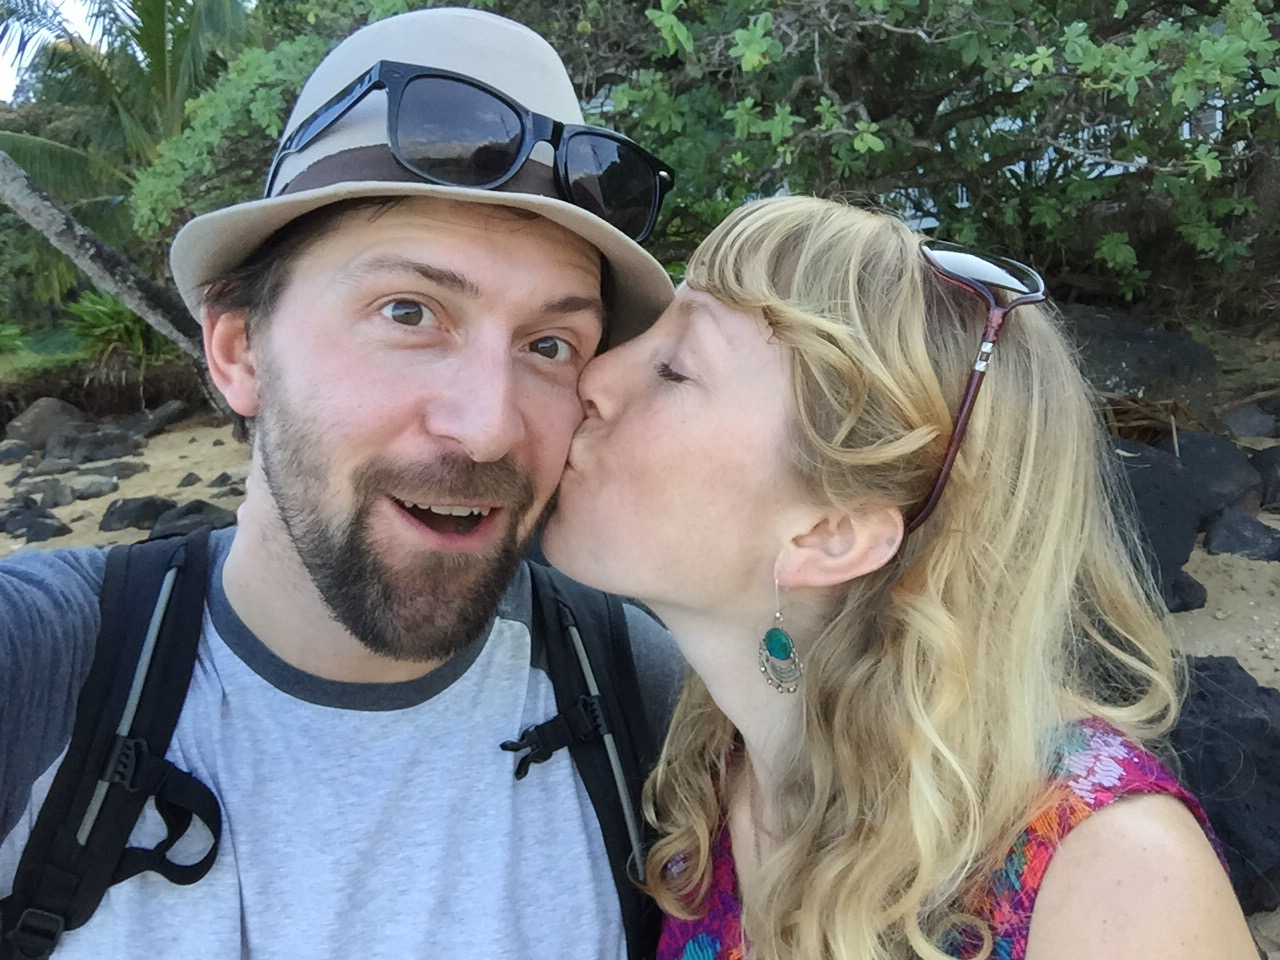 Jeff looking surprised while Andrea kisses him on cheek. They are on a beach in Hawaii.